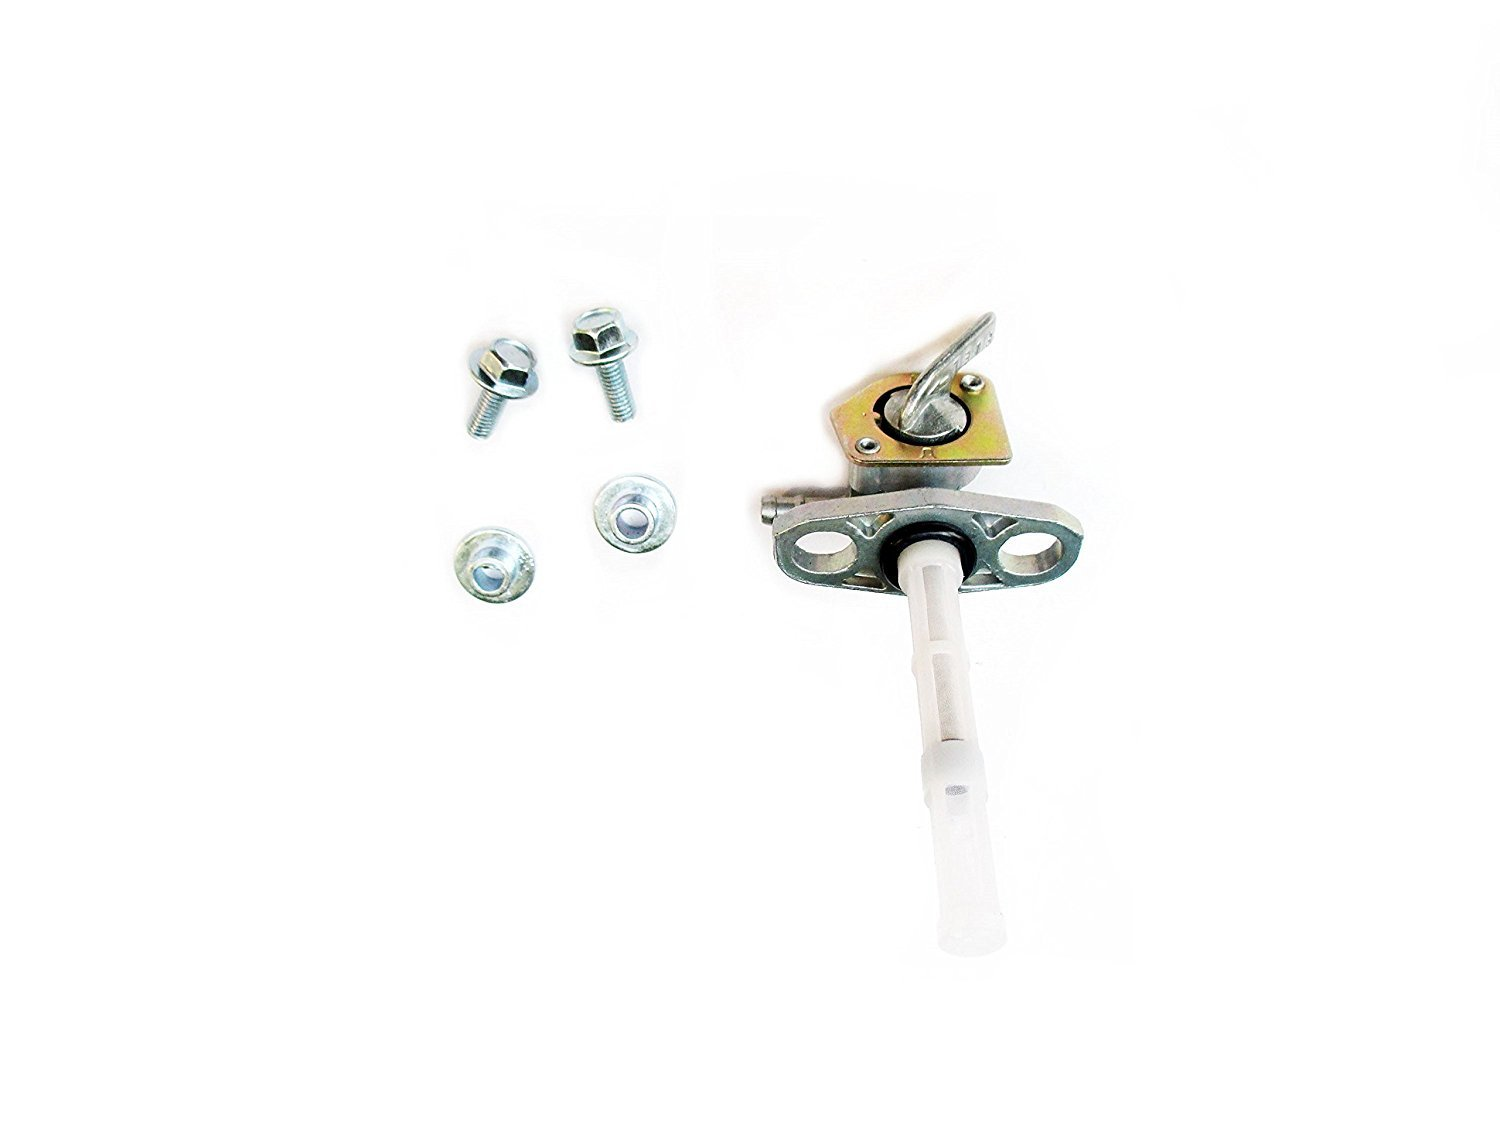 New Petcock Gas Fuel Tank Switch for Honda CRF50F CRF70F CRF80F CRF100F XR50R XR70R XR80R XR100R Replace 16960-GEL-701